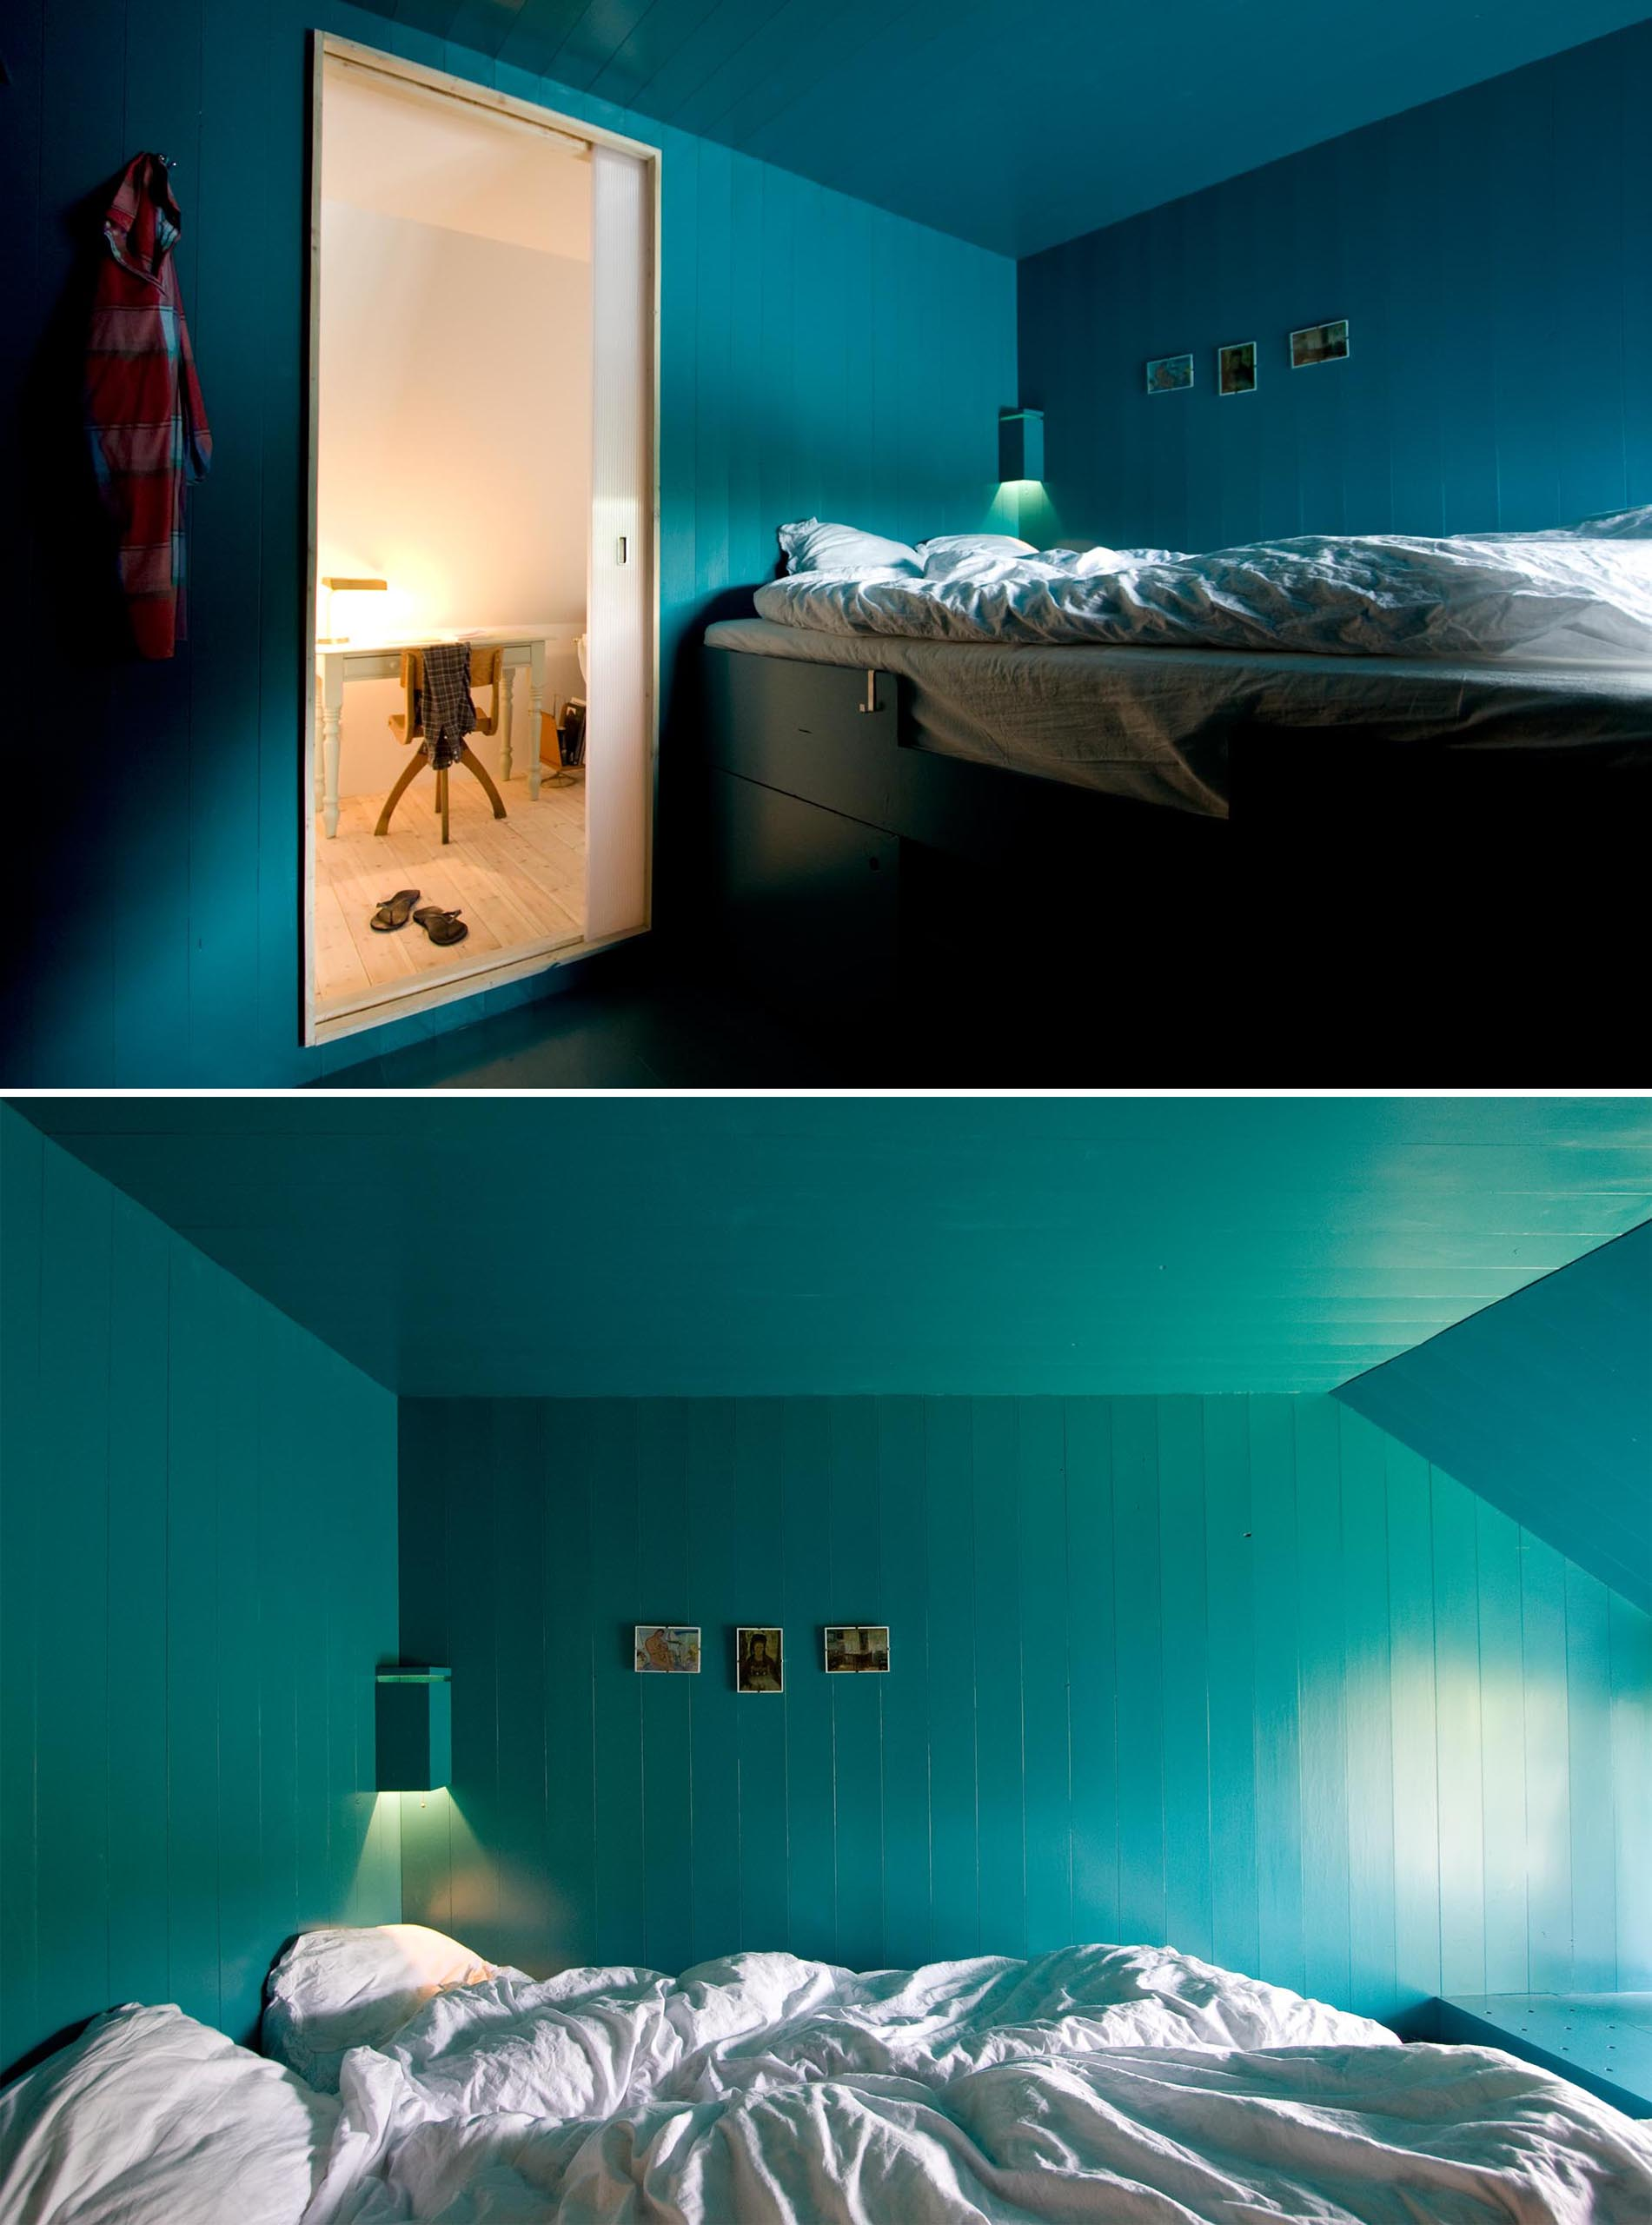 A modern turquoise blue bedroom with a loft bed that includes storage underneath.